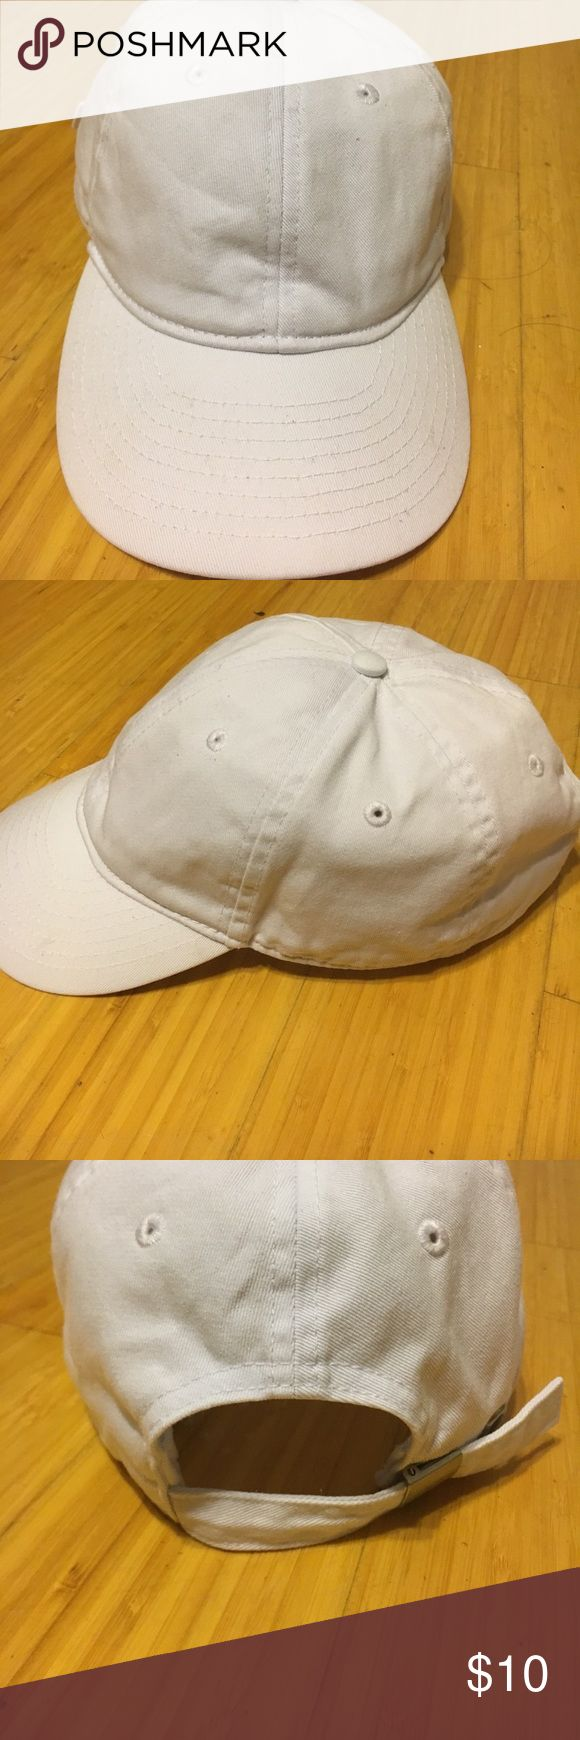 White baseball caps for crafts - H M Blank White Dad Hat